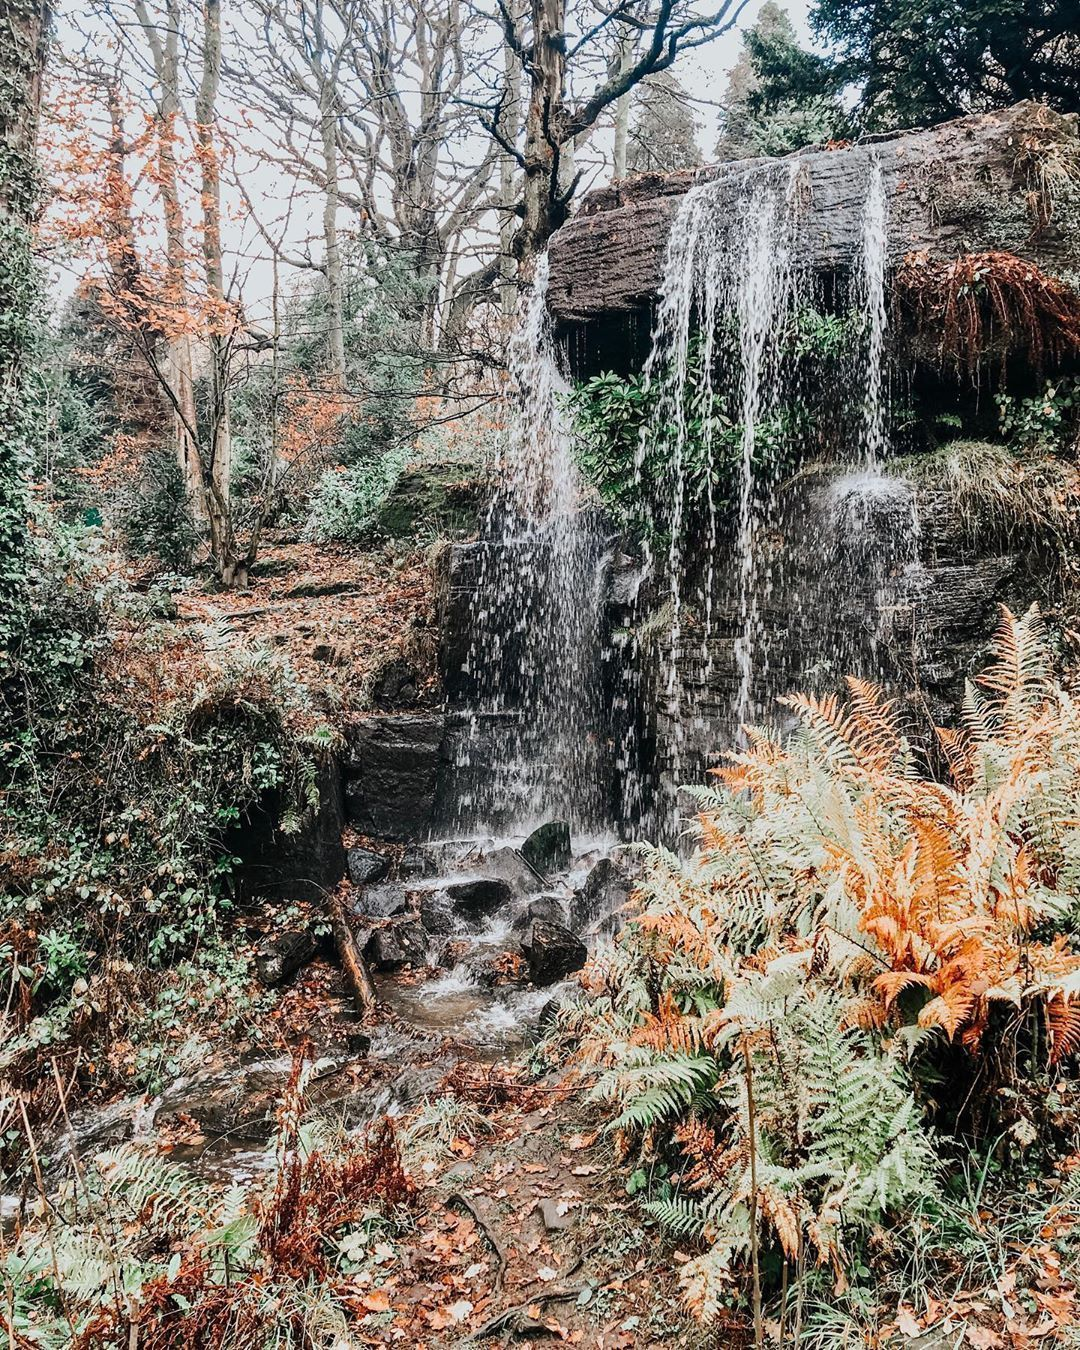 """Lisa Clare Stoker on Instagram: """"HELLO SEPTEMBER!! Officially on the Autumn bandwagon as of today so decided to throw it back to this gorgeous stroll over Beeley and…"""" #helloseptember Lisa Clare Stoker on Instagram: """"HELLO SEPTEMBER!! Officially on the Autumn bandwagon as of today so decided to throw it back to this gorgeous stroll over Beeley and…"""" #helloseptember Lisa Clare Stoker on Instagram: """"HELLO SEPTEMBER!! Officially on the Autumn bandwagon as of today so decided to throw #helloseptember"""